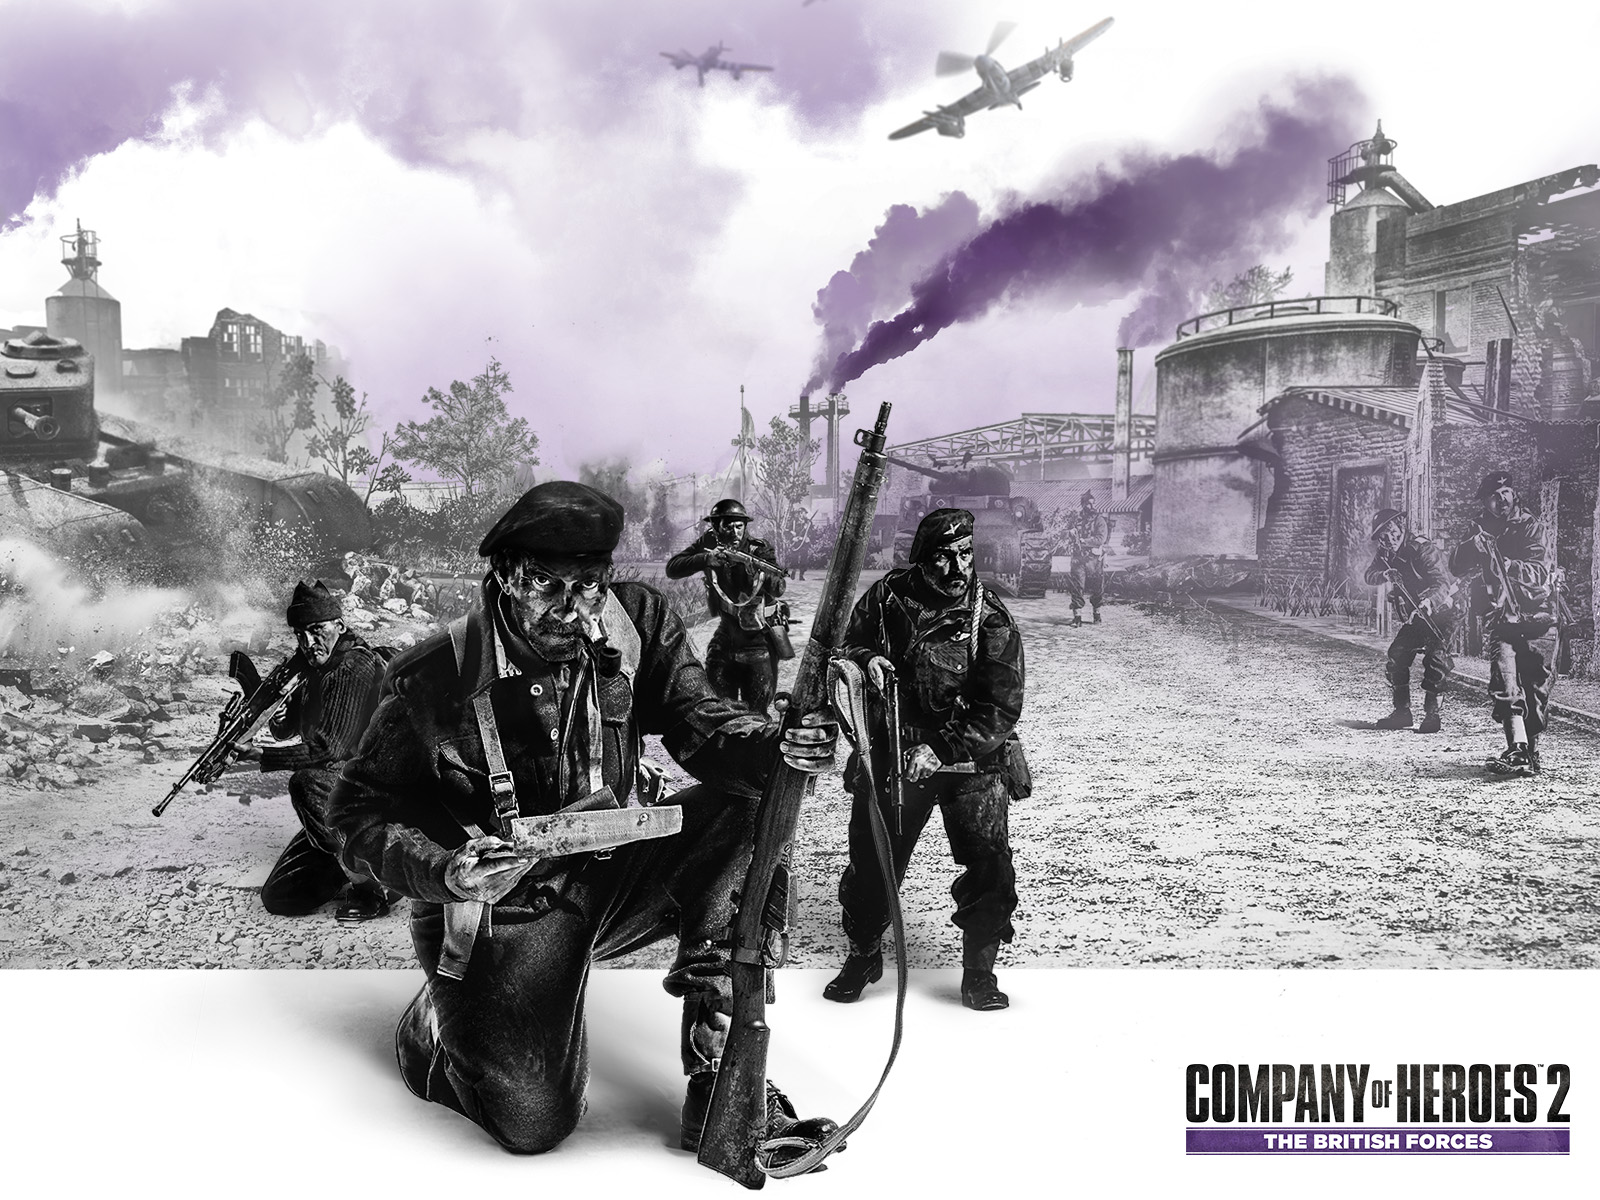 company of heroes 2: the british forces (2015) promotional art